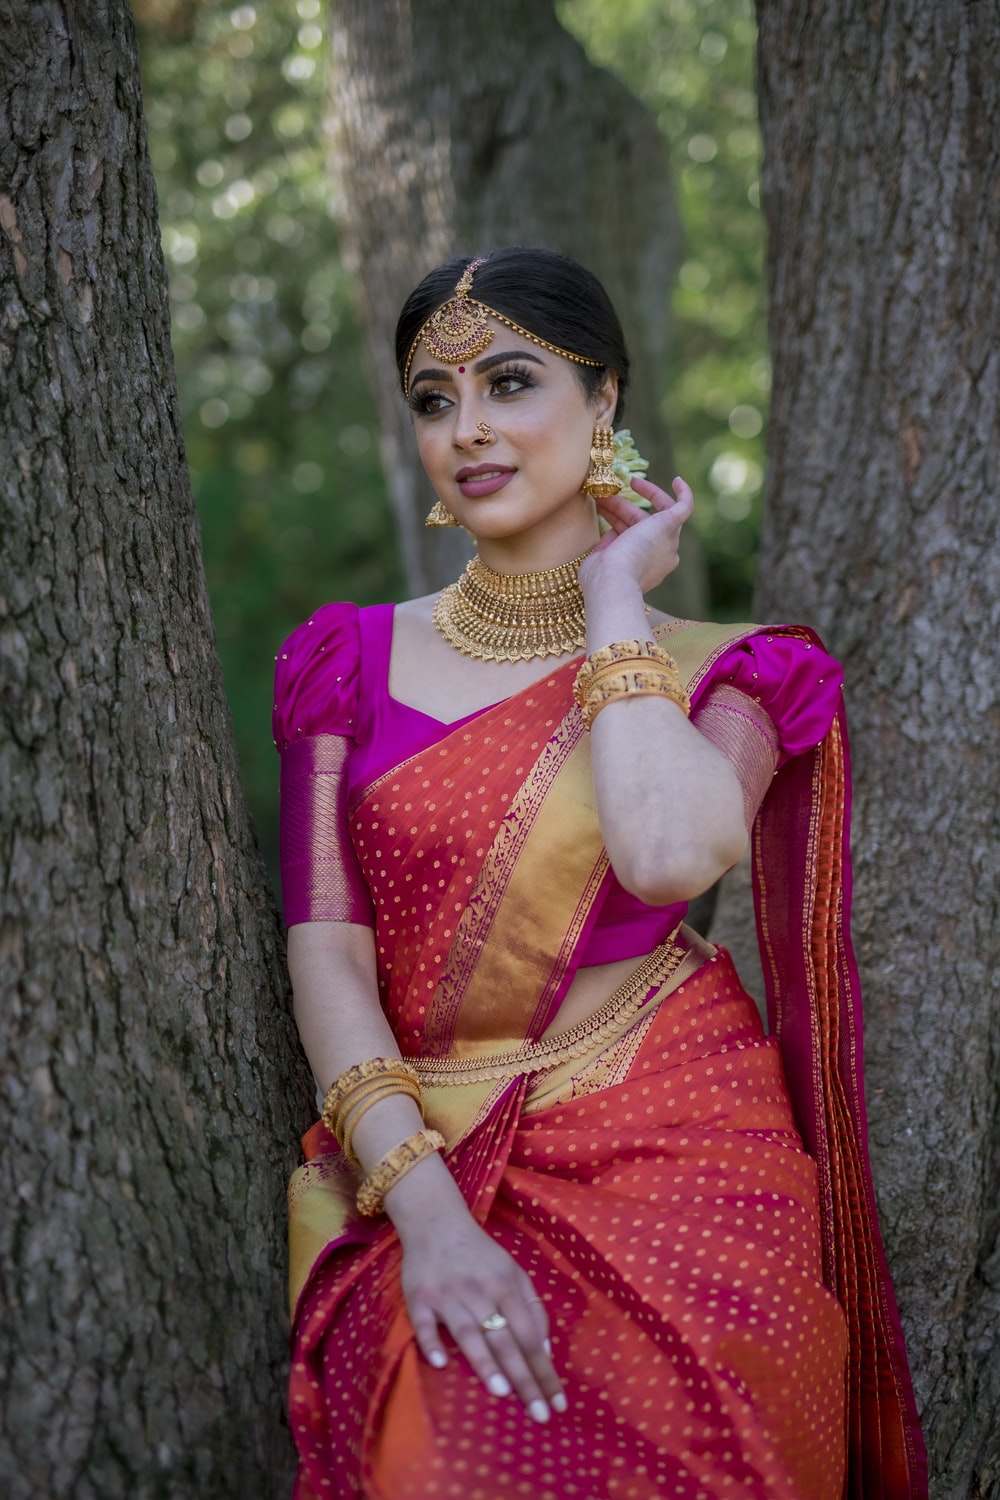 woman in red and blue sari dress